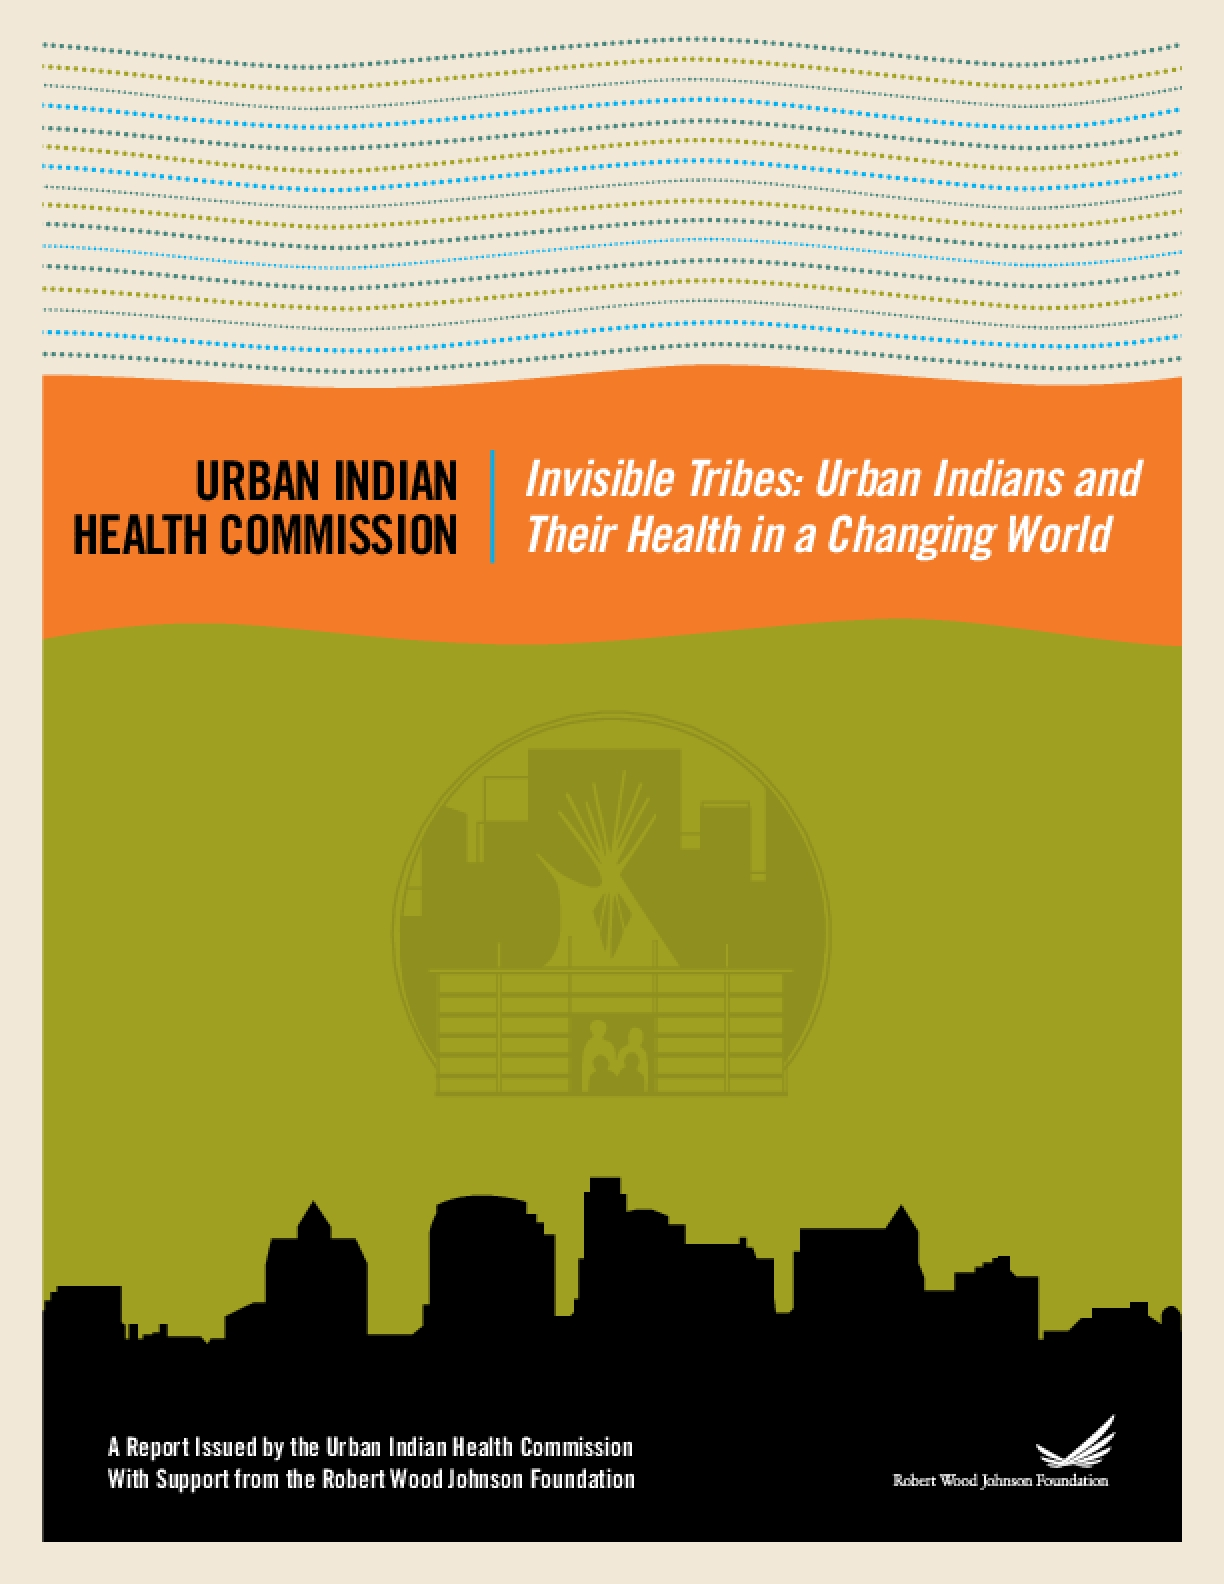 Invisible Tribes: Urban Indians and Their Health in a Changing World